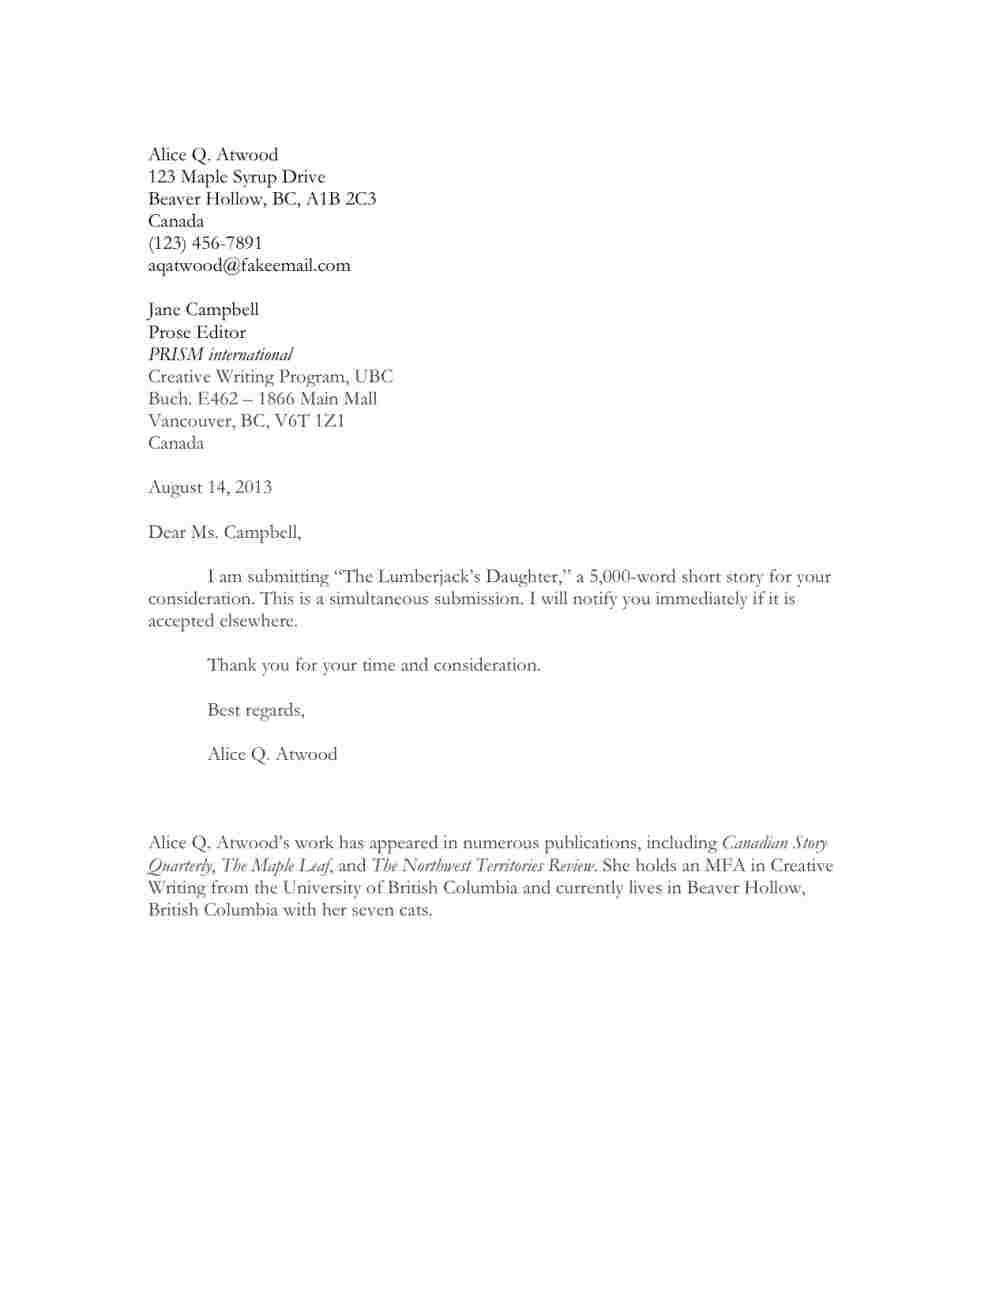 Cover Letter for Submitting Poetry How to Write A Cover Letter for A Poetry Submission